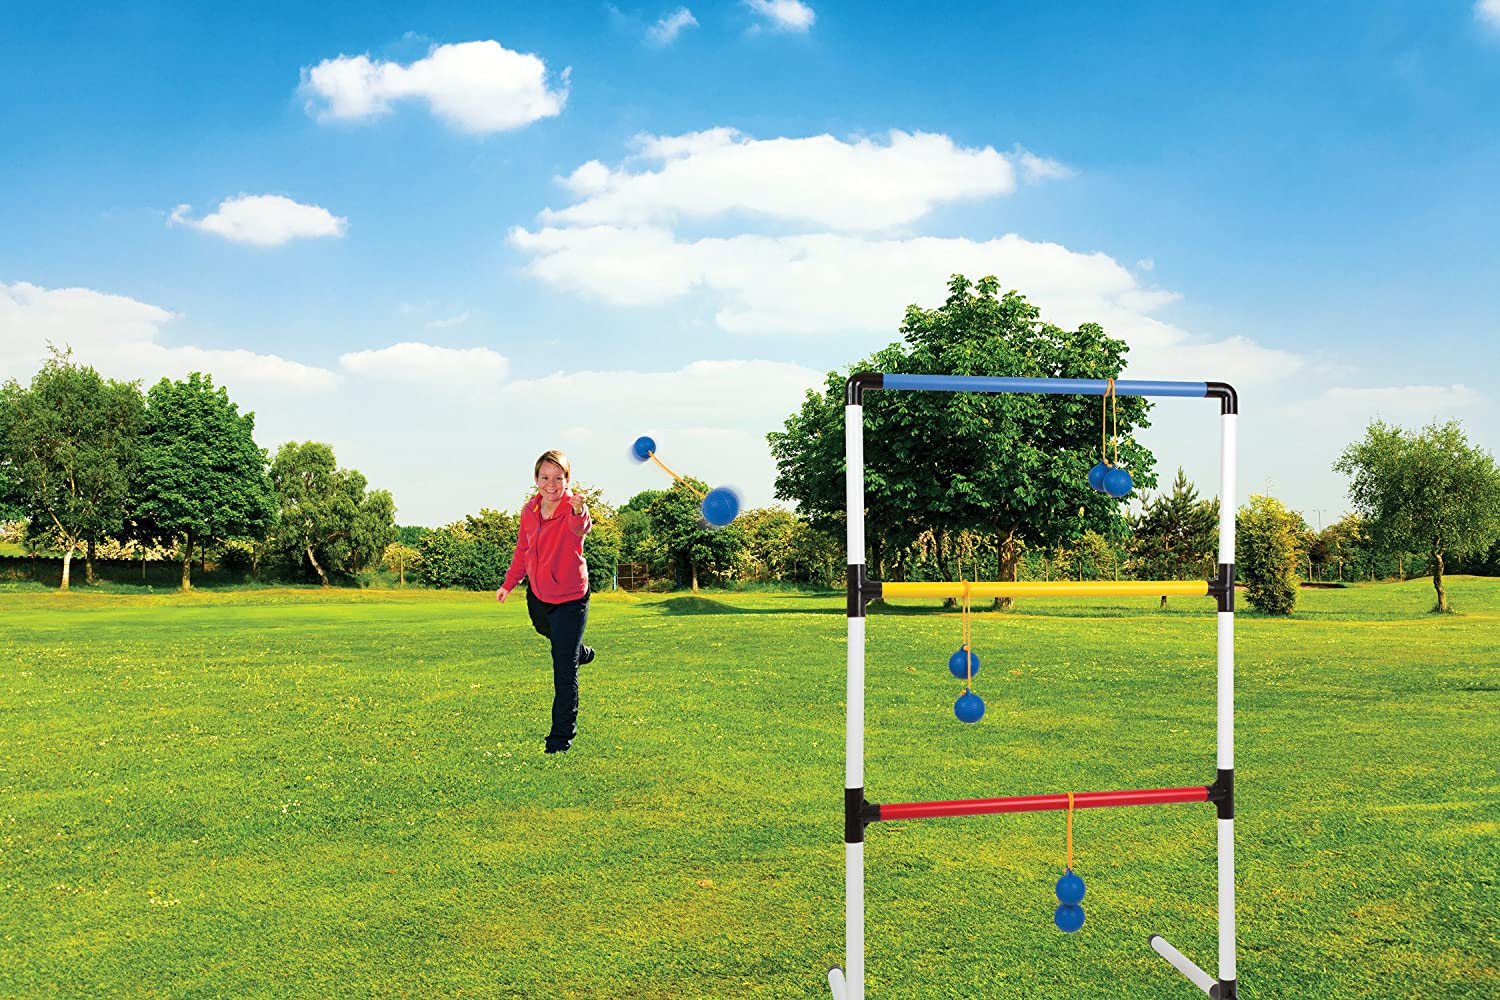 amazon com outdoor backyard ladder ball lawn game 1 one piece